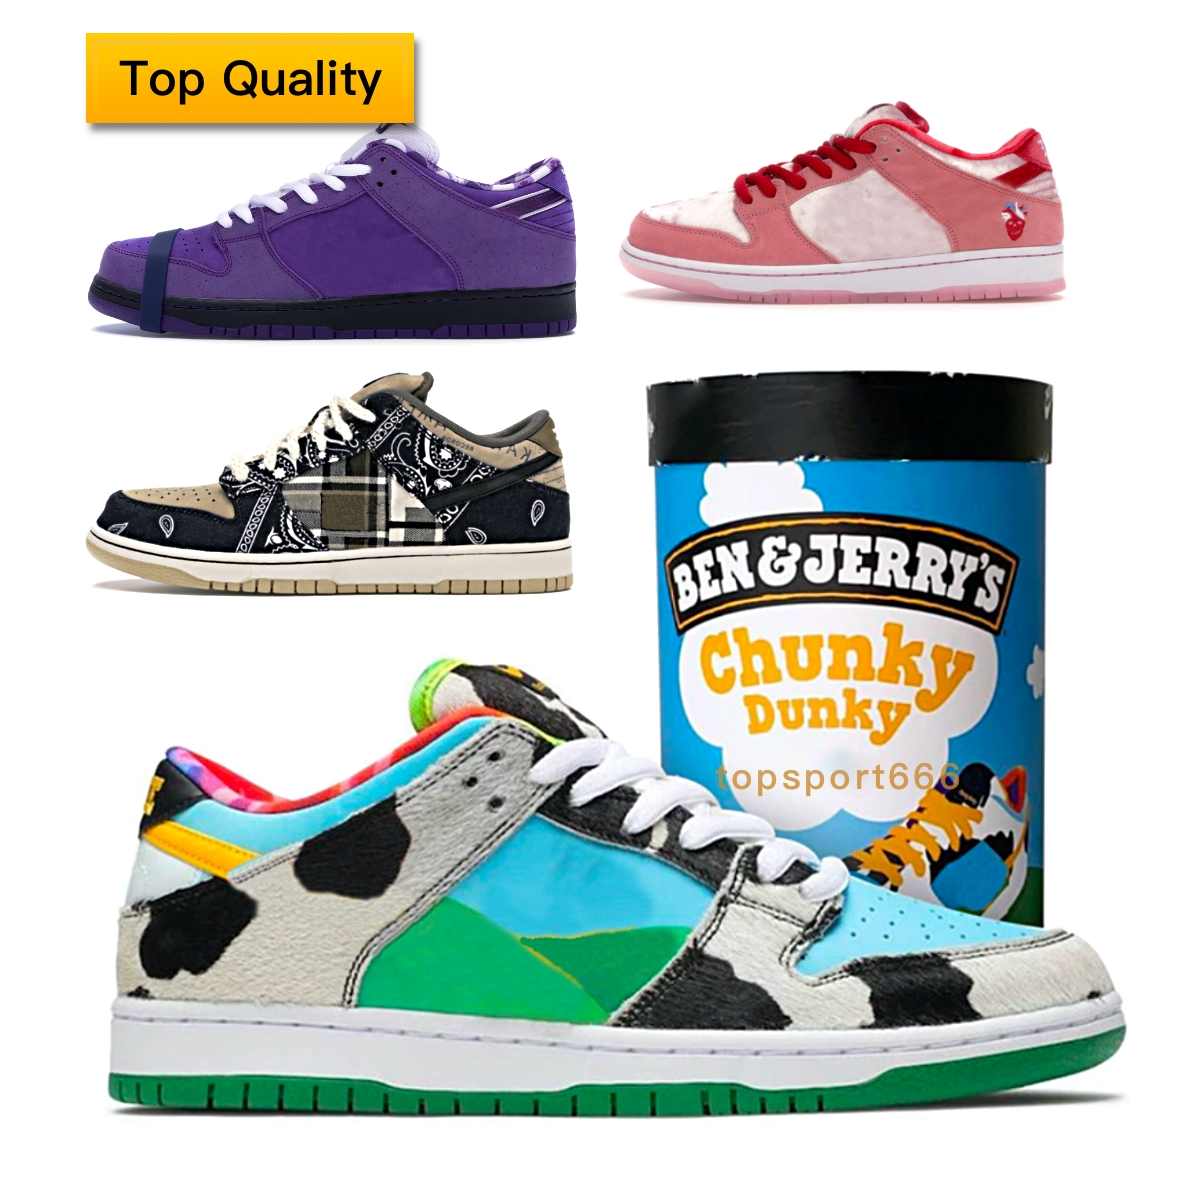 Special Size Shoes Online Shopping